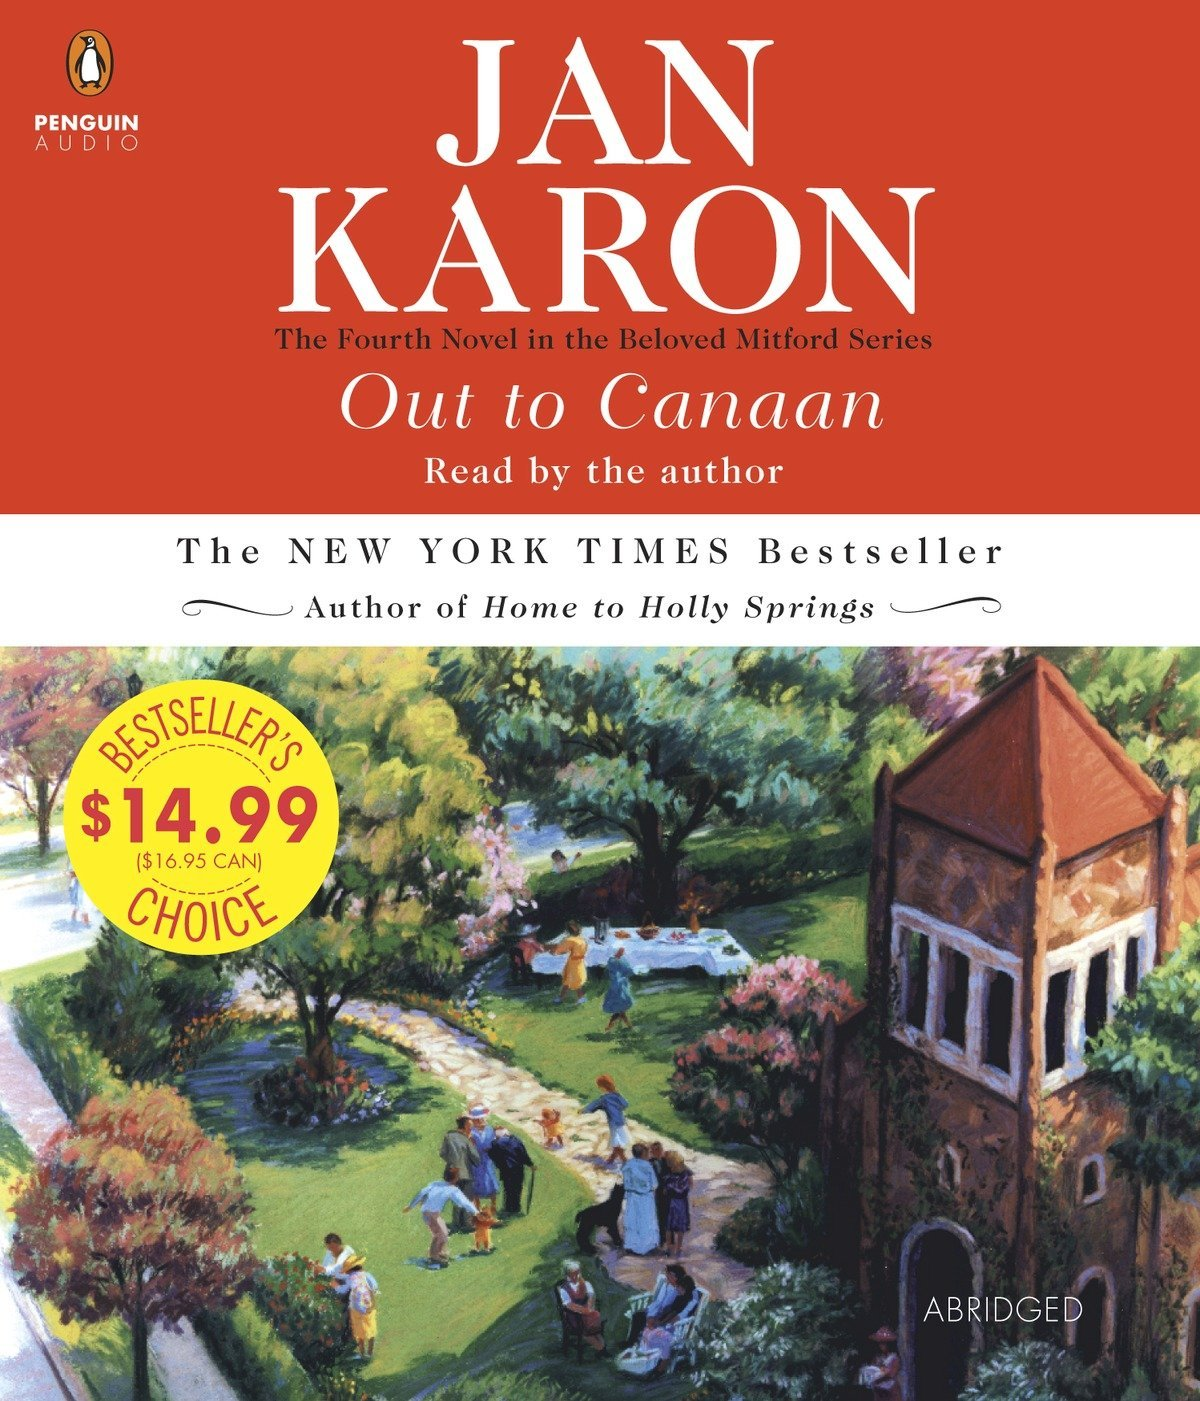 Out to Canaan (Mitford Years): Amazon.es: Jan Karon: Libros en idiomas extranjeros